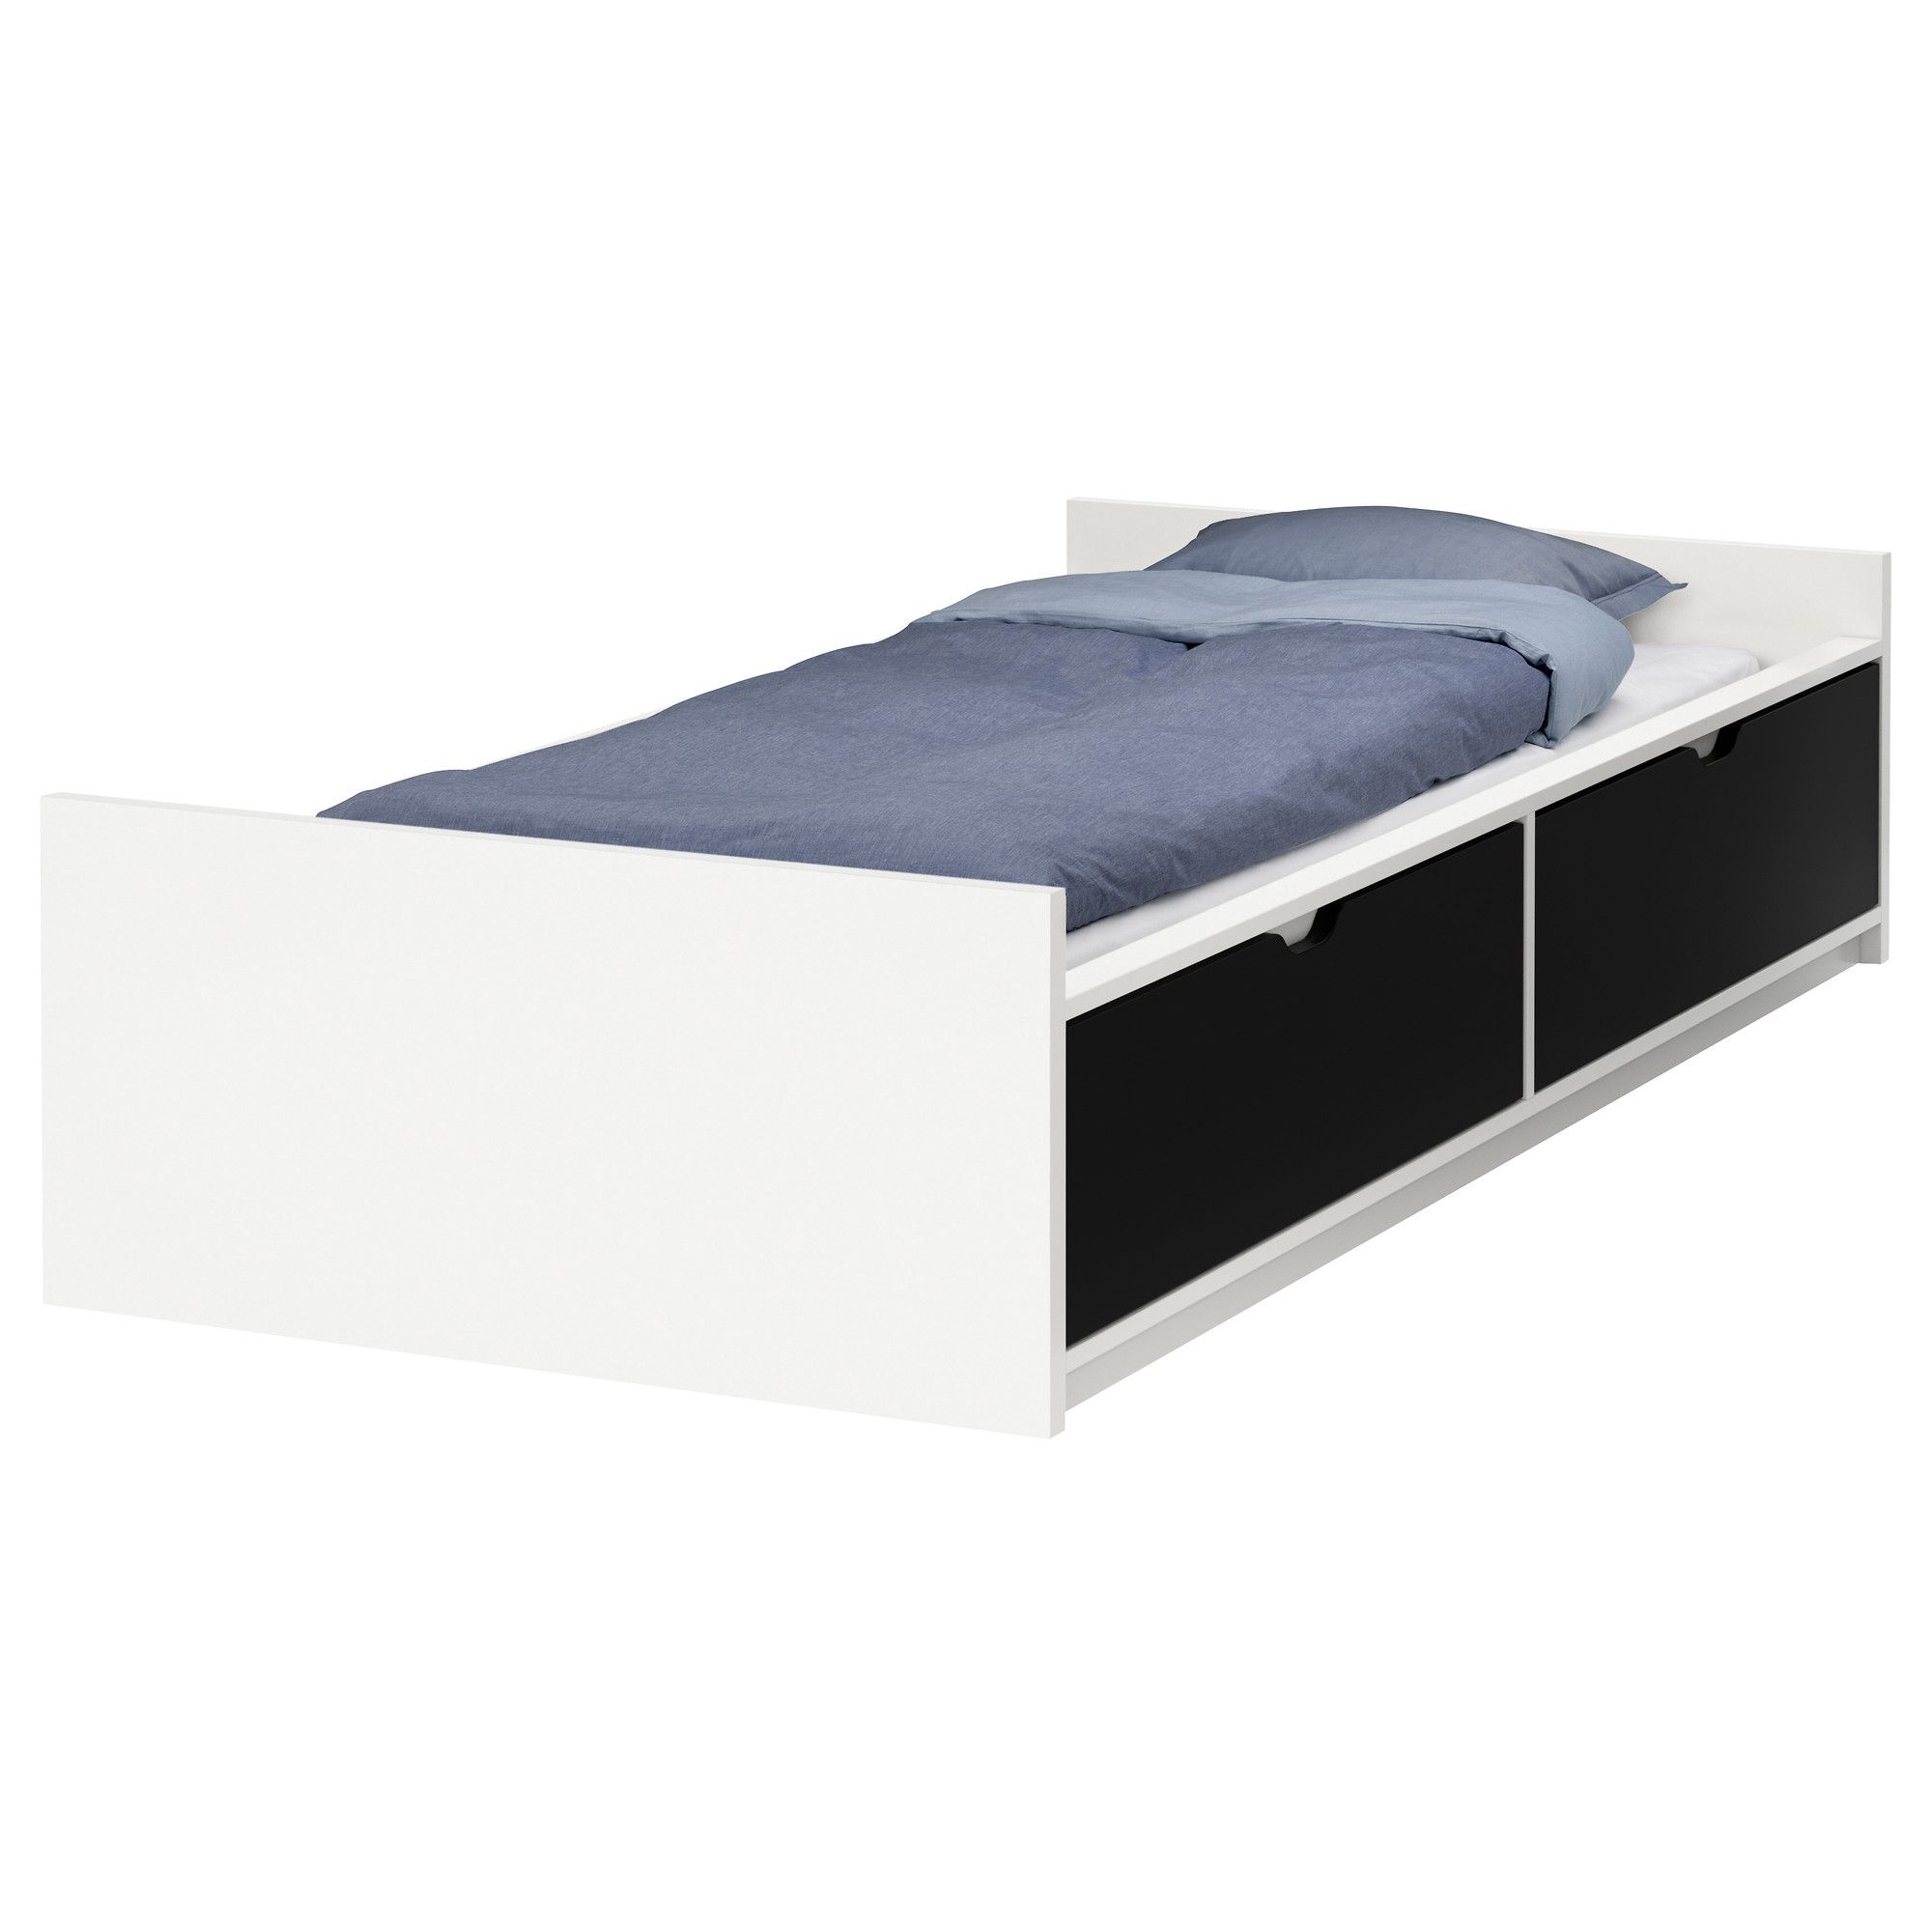 Single bed frame design - Flaxa Bed Frame W Storage Slatted Bedbase Ikea What Color Is Drawer